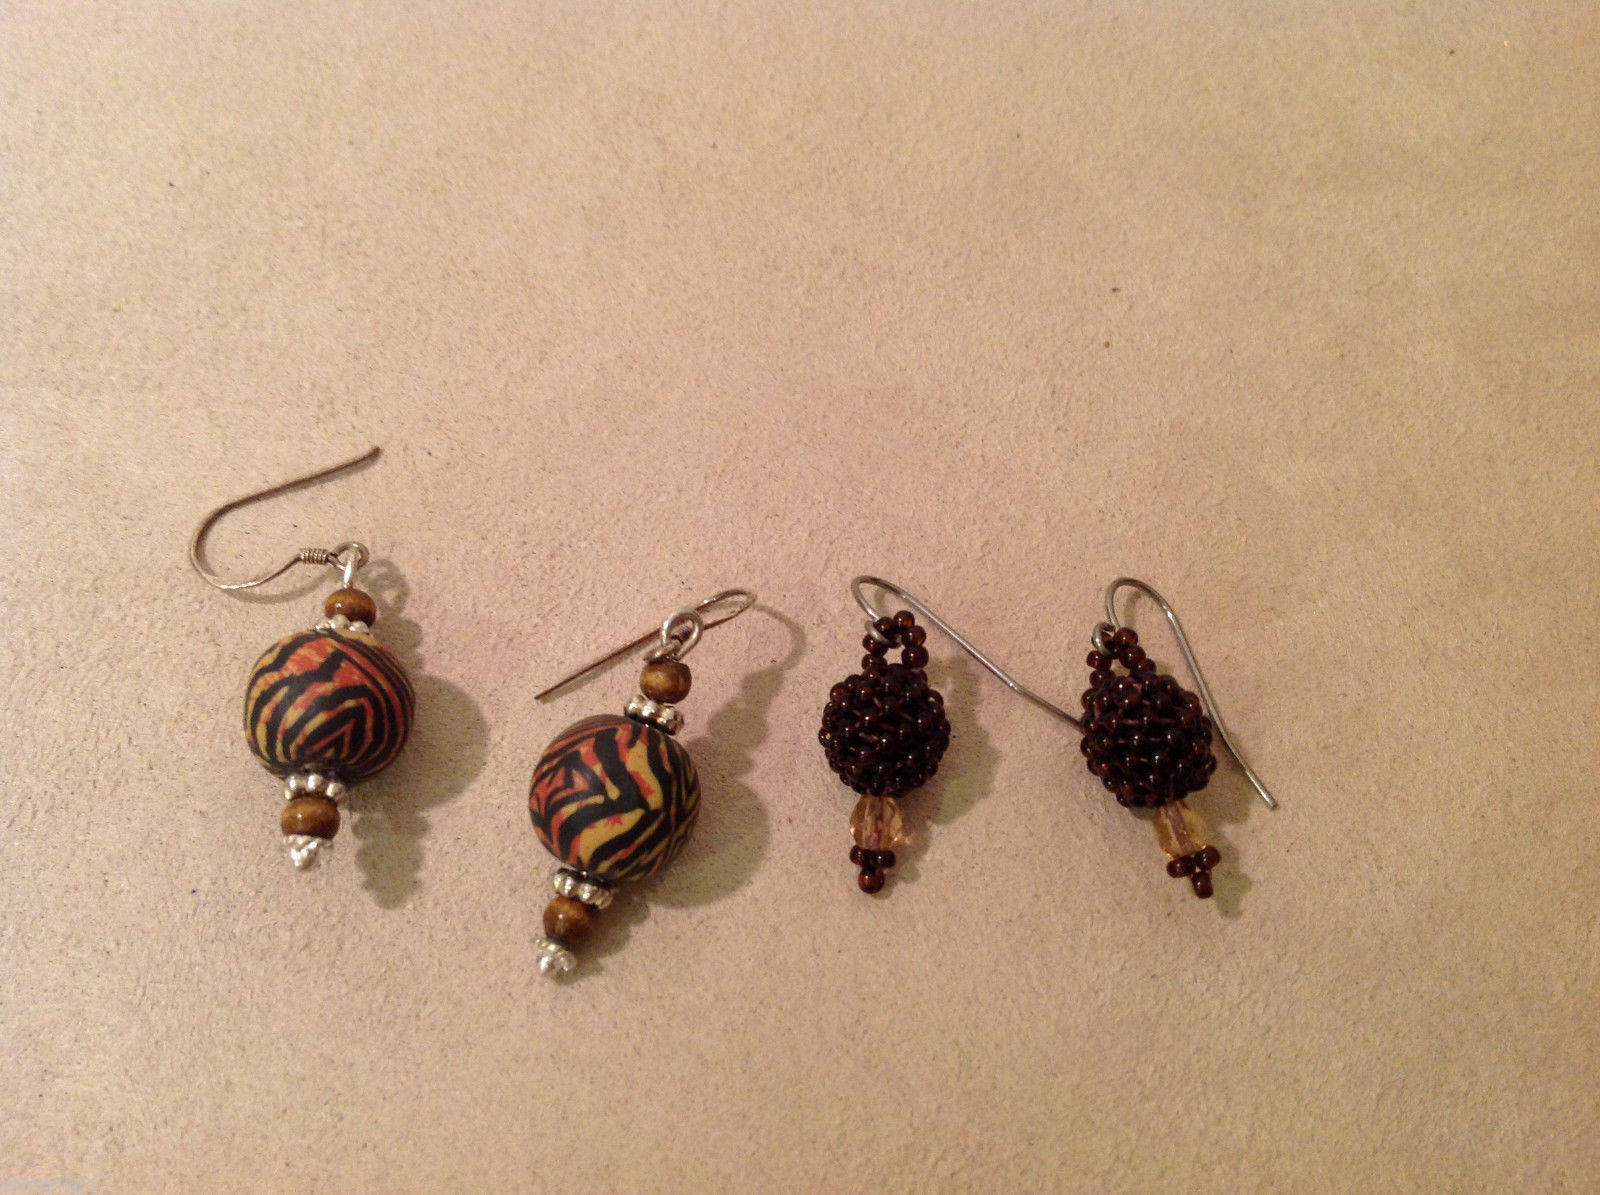 Lot of 2 pairs Dangling Earrings: Zebra print and Brown beaded, wood, glass